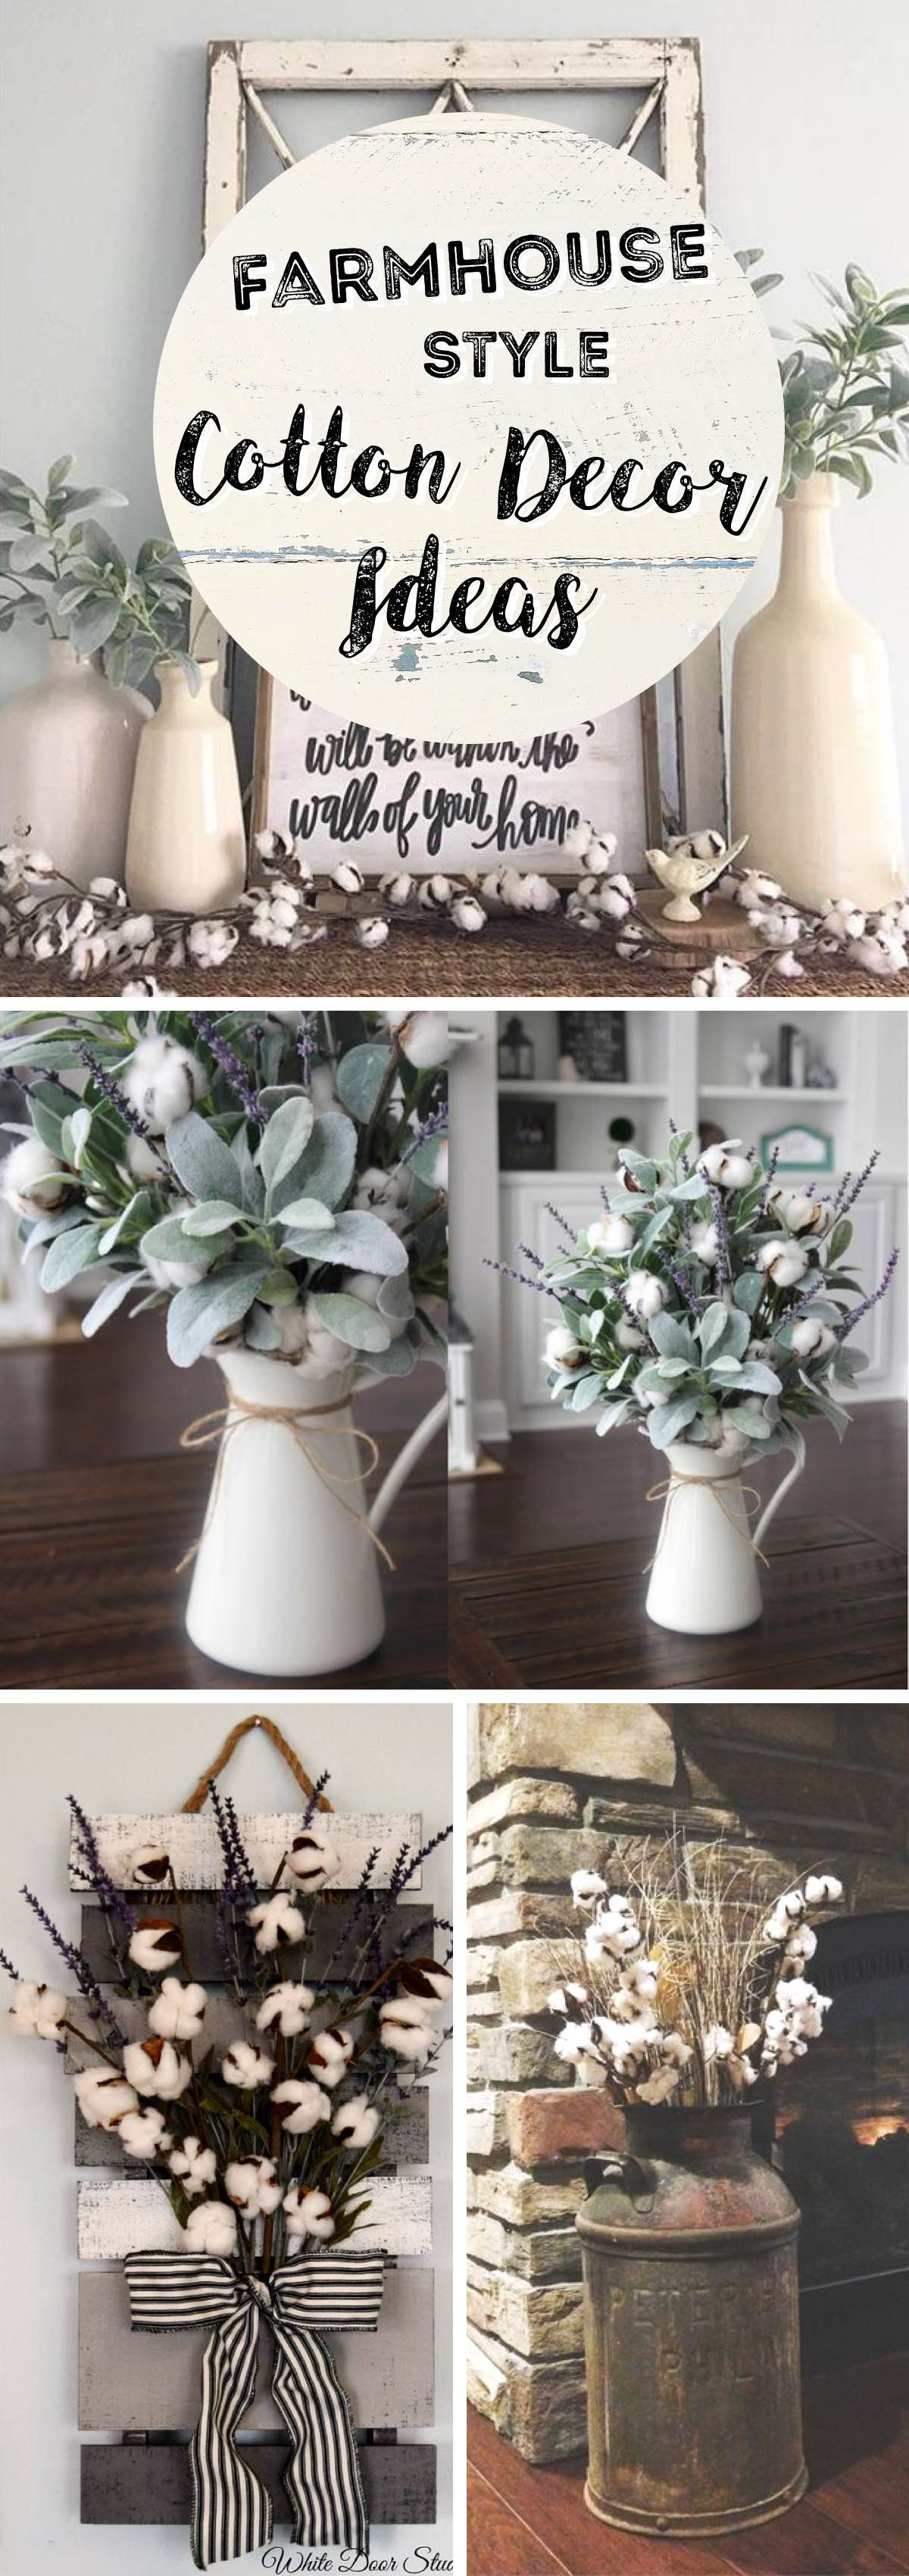 Best Farmhouse Style Cotton Decor Ideas